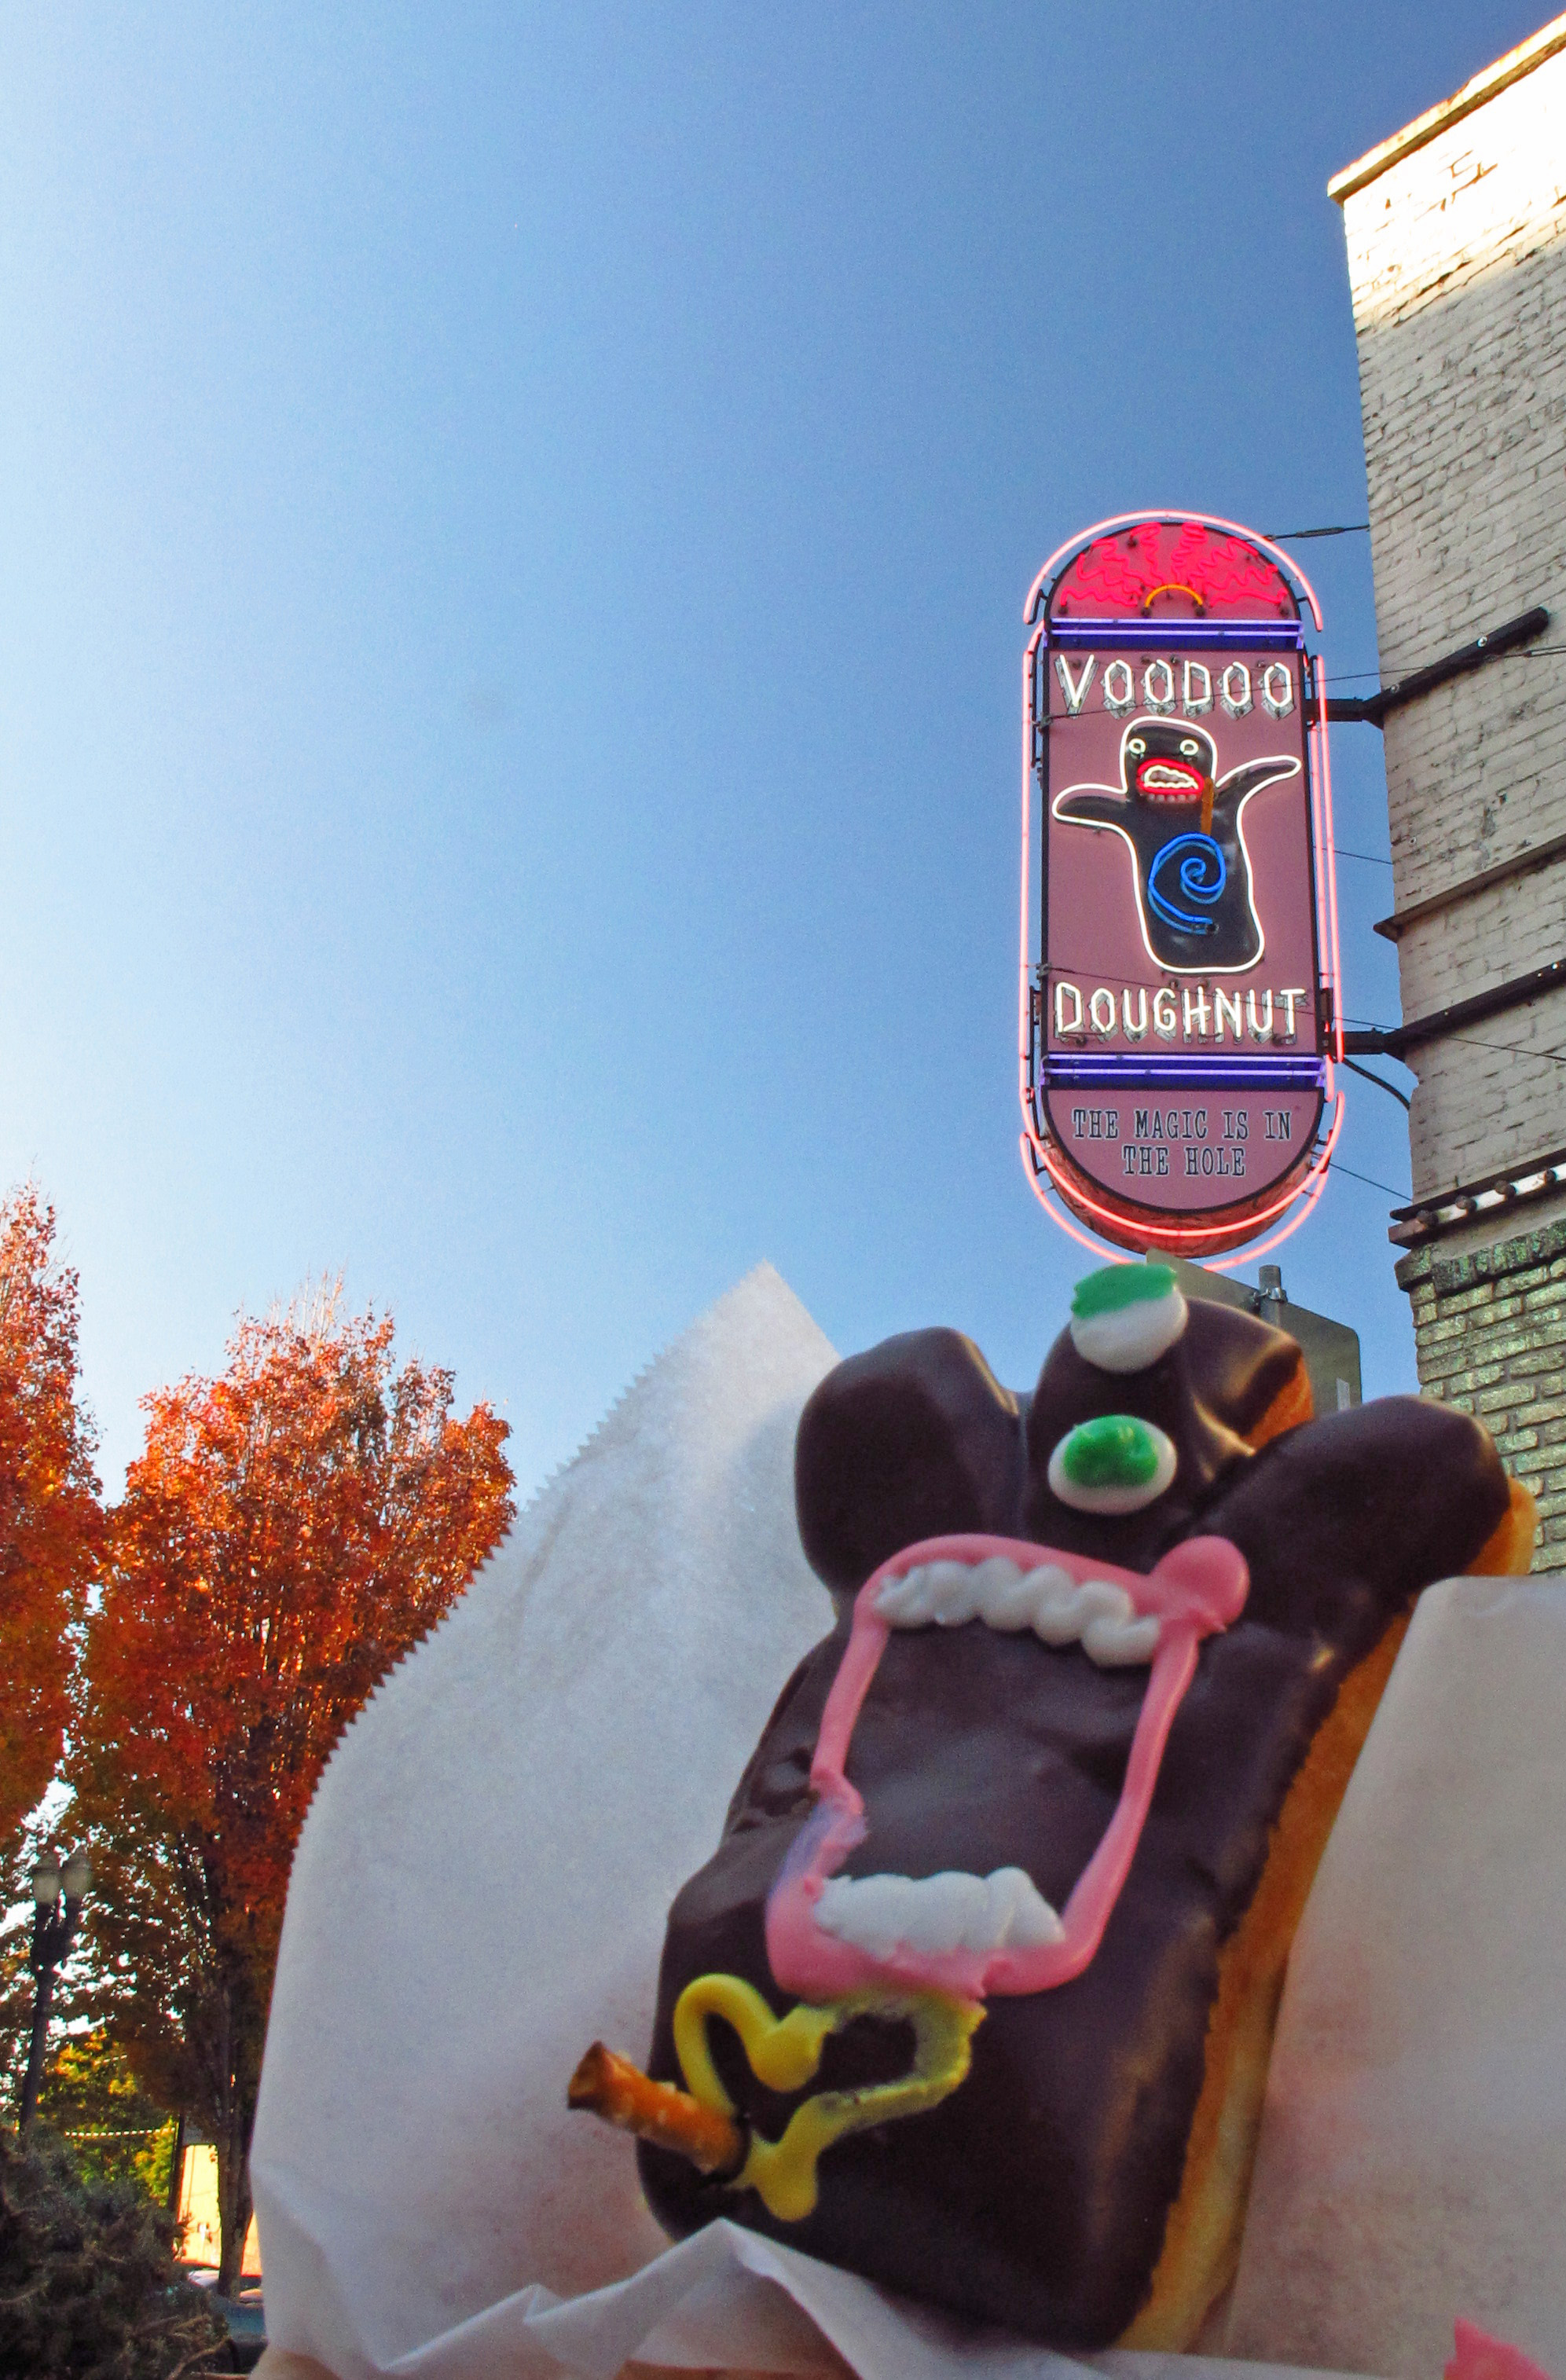 B11 Voodoo Doughnut  Pdxccentric. Where To Get Disabled Placard. Hazmat Placards. Median Signs. Ppt Banners. Beard Man Stickers. Garden Path Murals. High Rise Building Logo. Claw Stickers